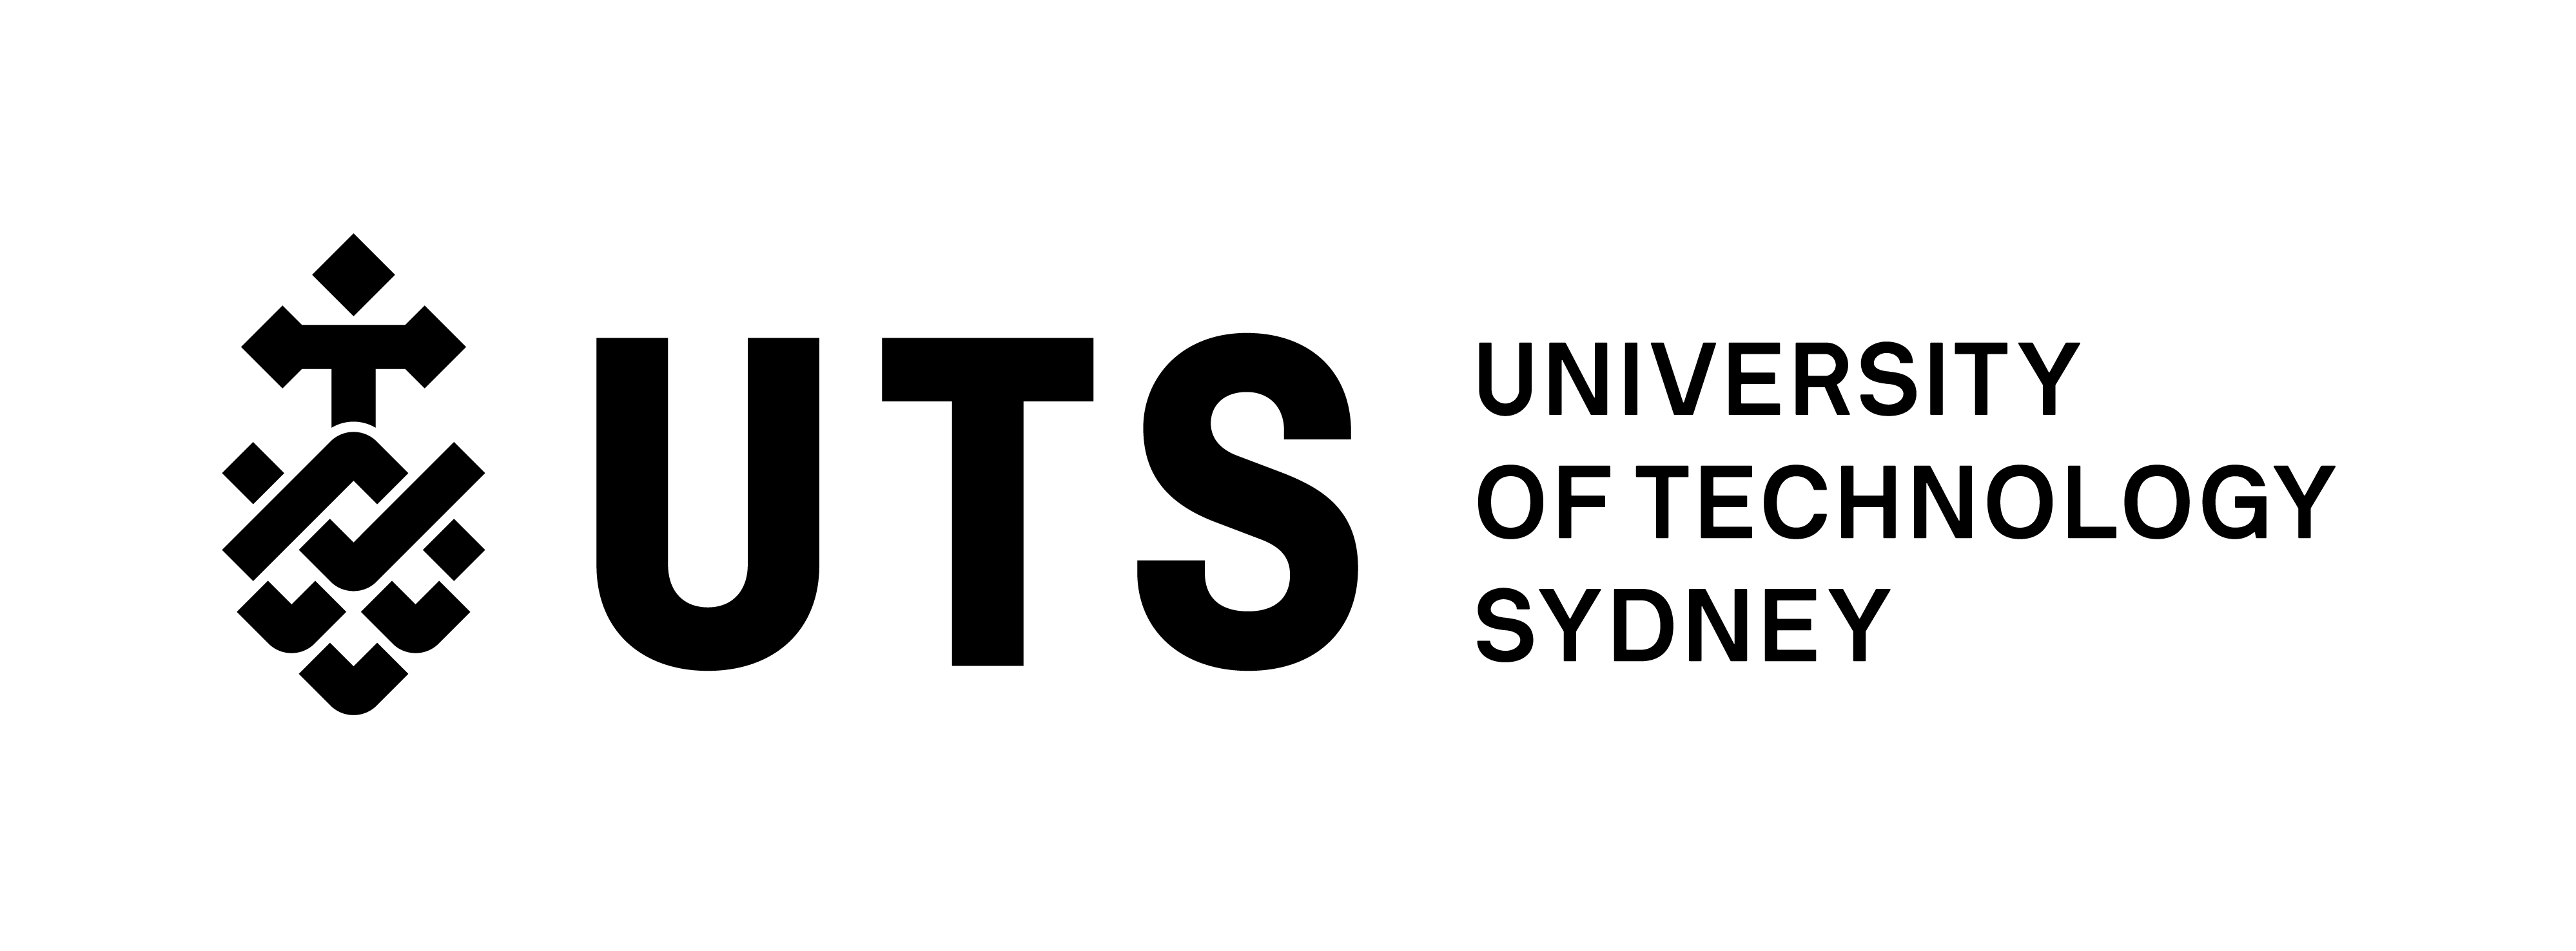 University of Technology Sydney - Bachelor of Engineering (Honours) / Bachelor of Science / Diploma in Professional Engineering Practice